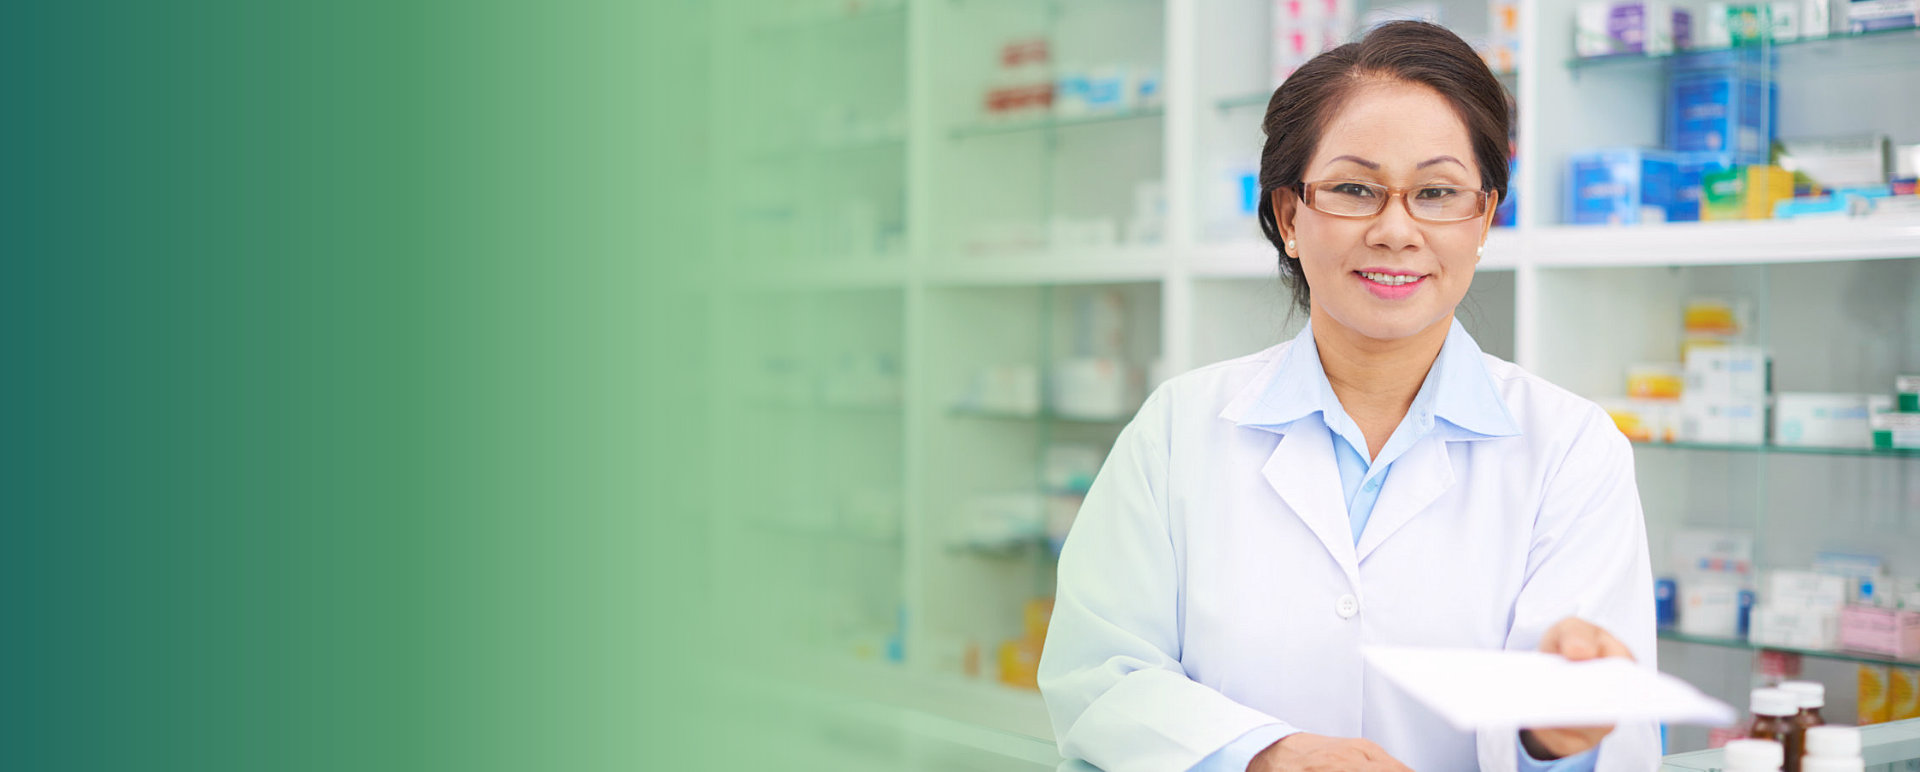 adult female pharmacist smiling